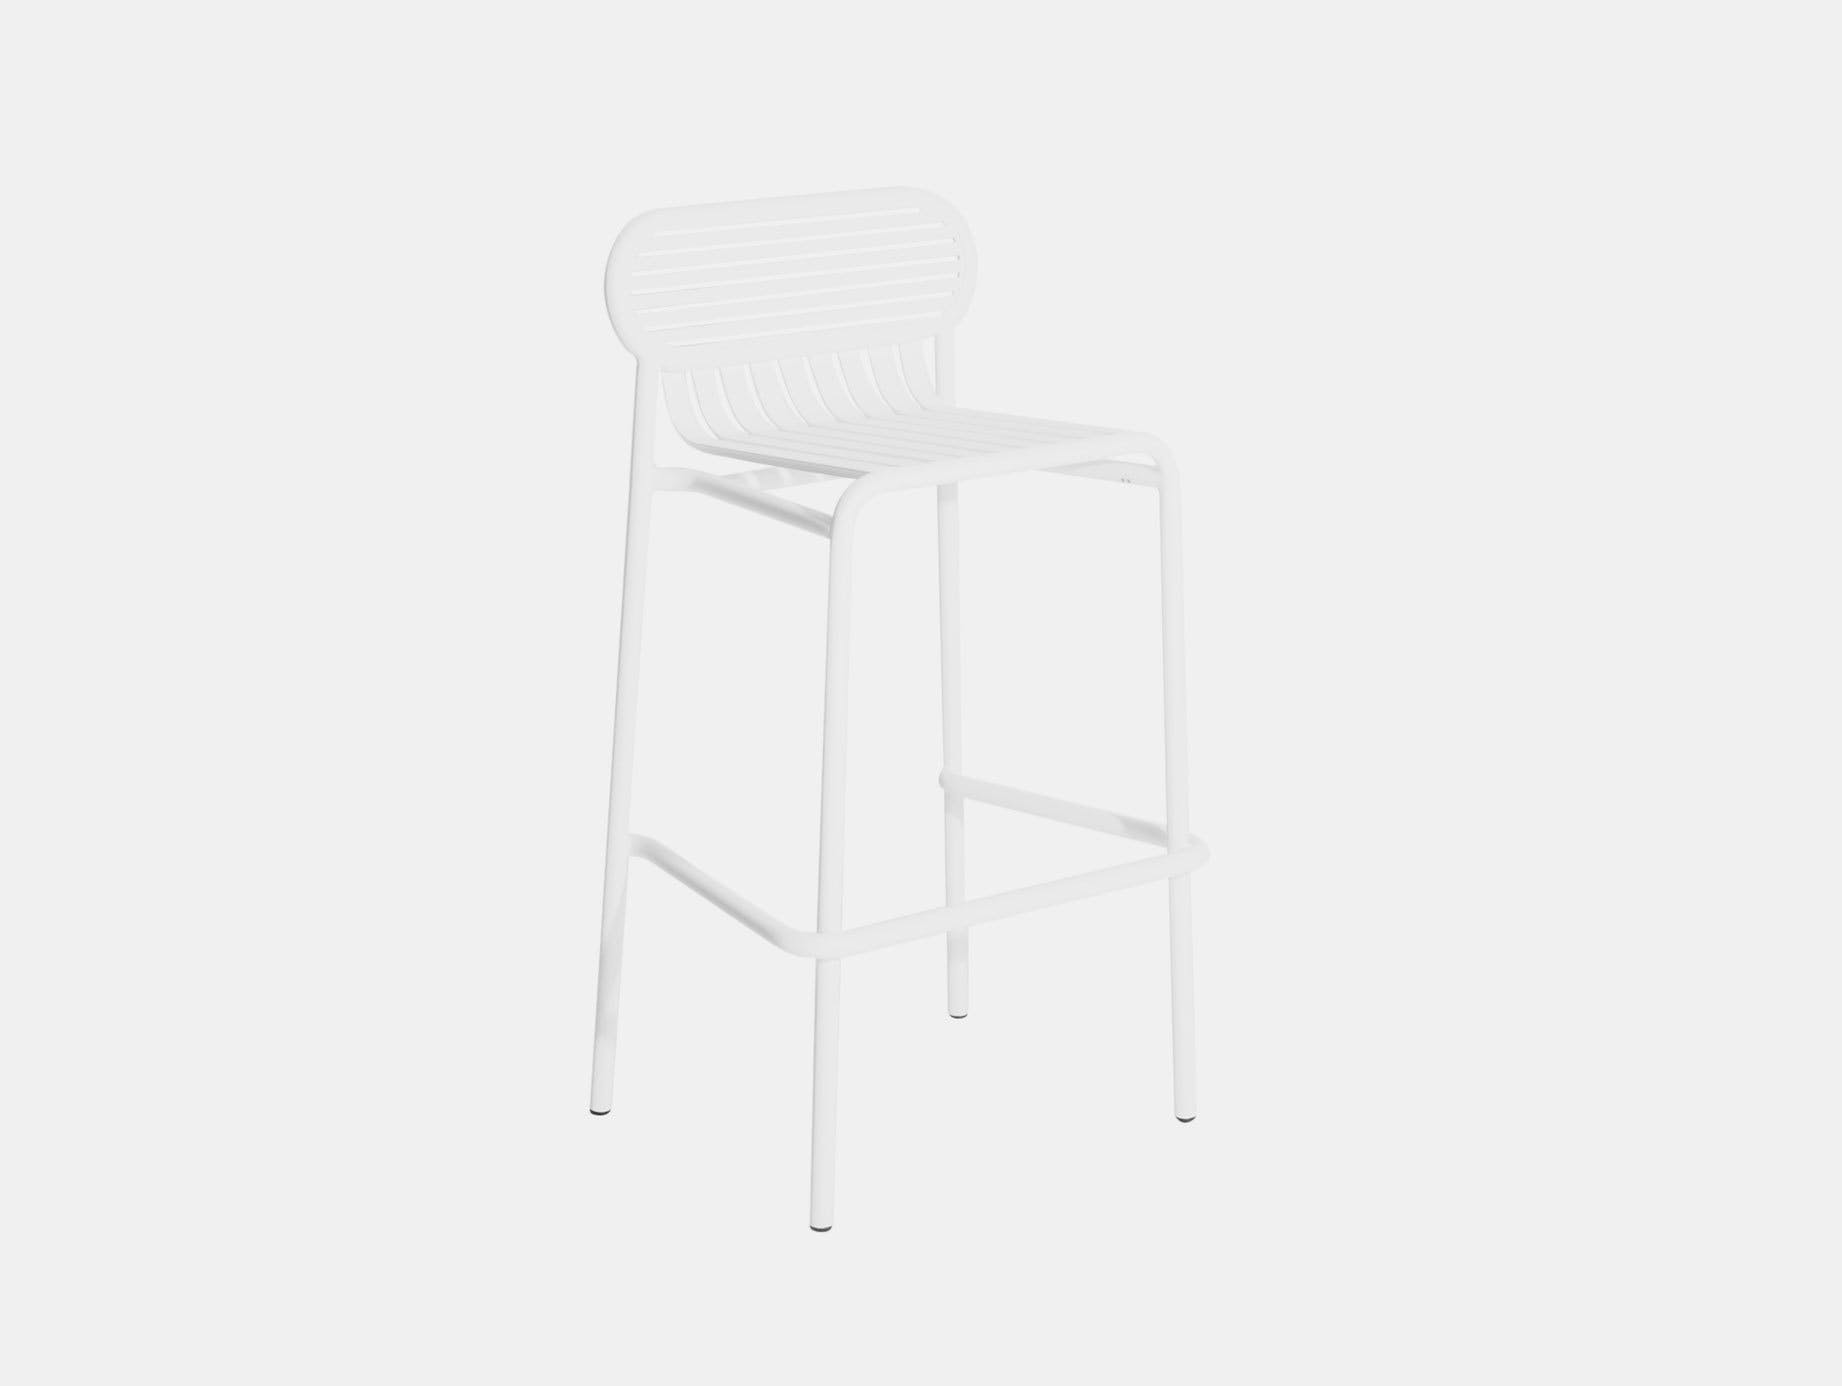 Petite Friture Week End Outdoor Stool white Studio Brichet Ziegler